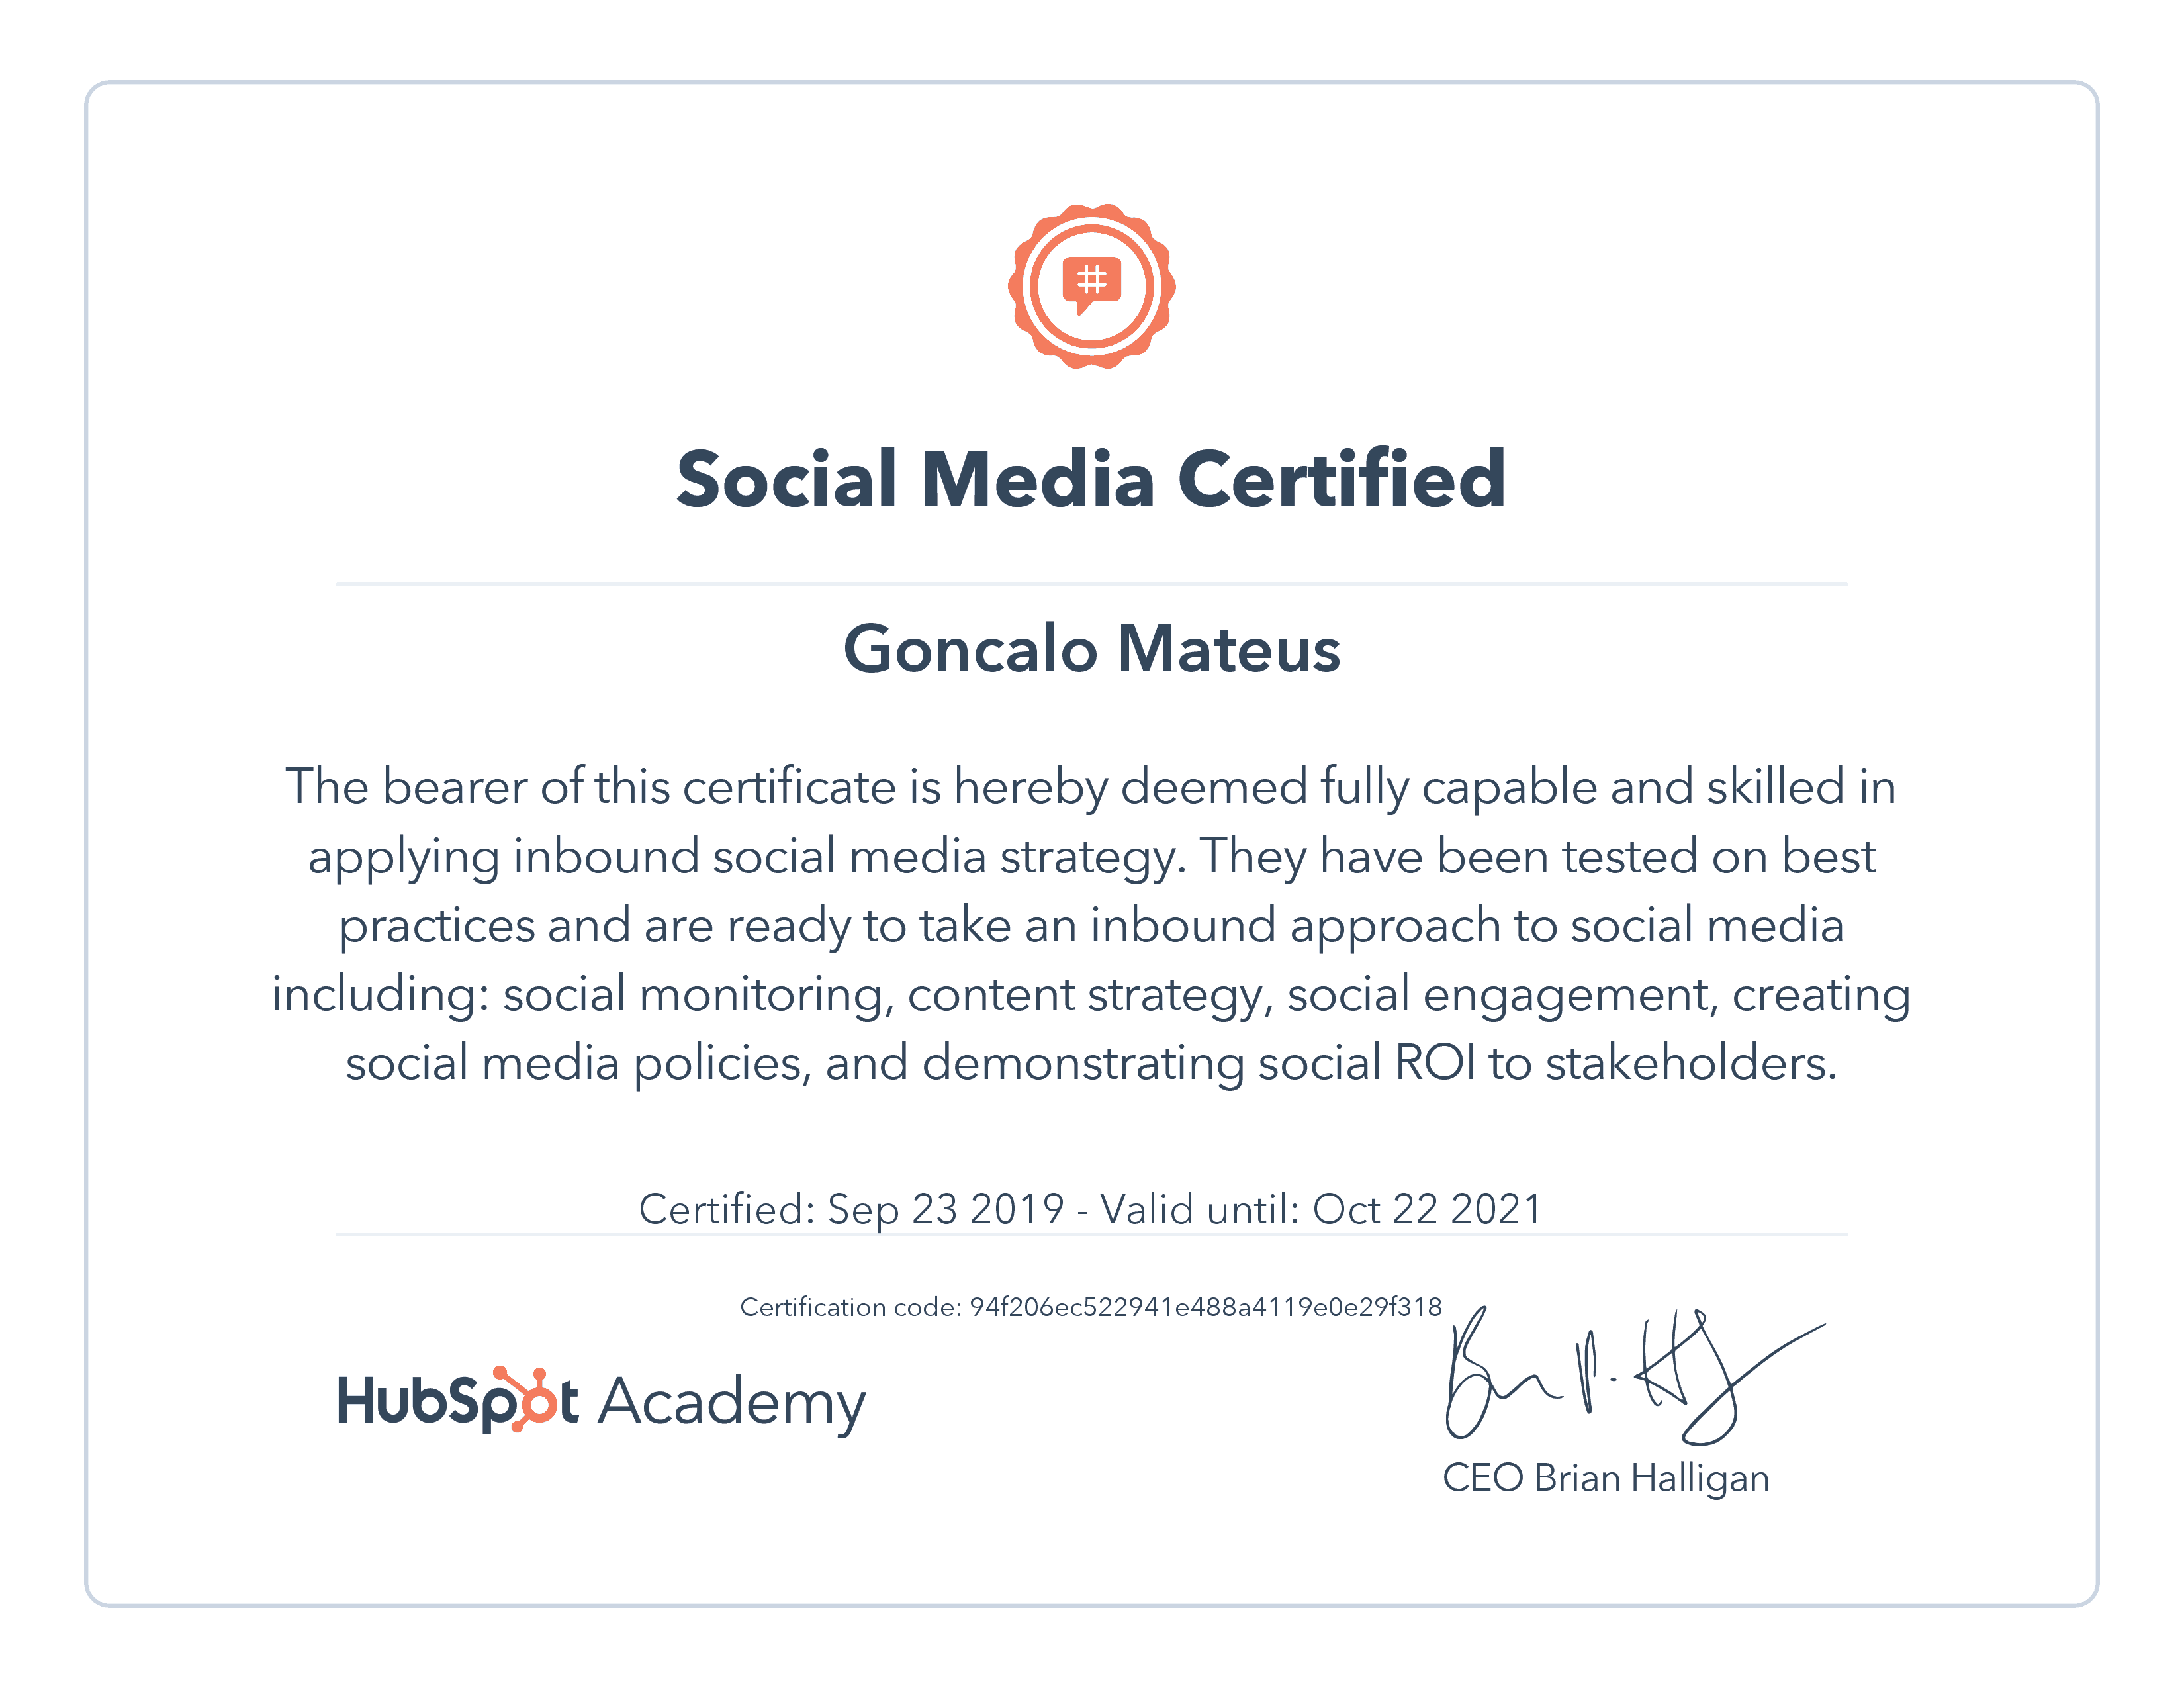 Image of Hubspot Academy Social Media Certificate